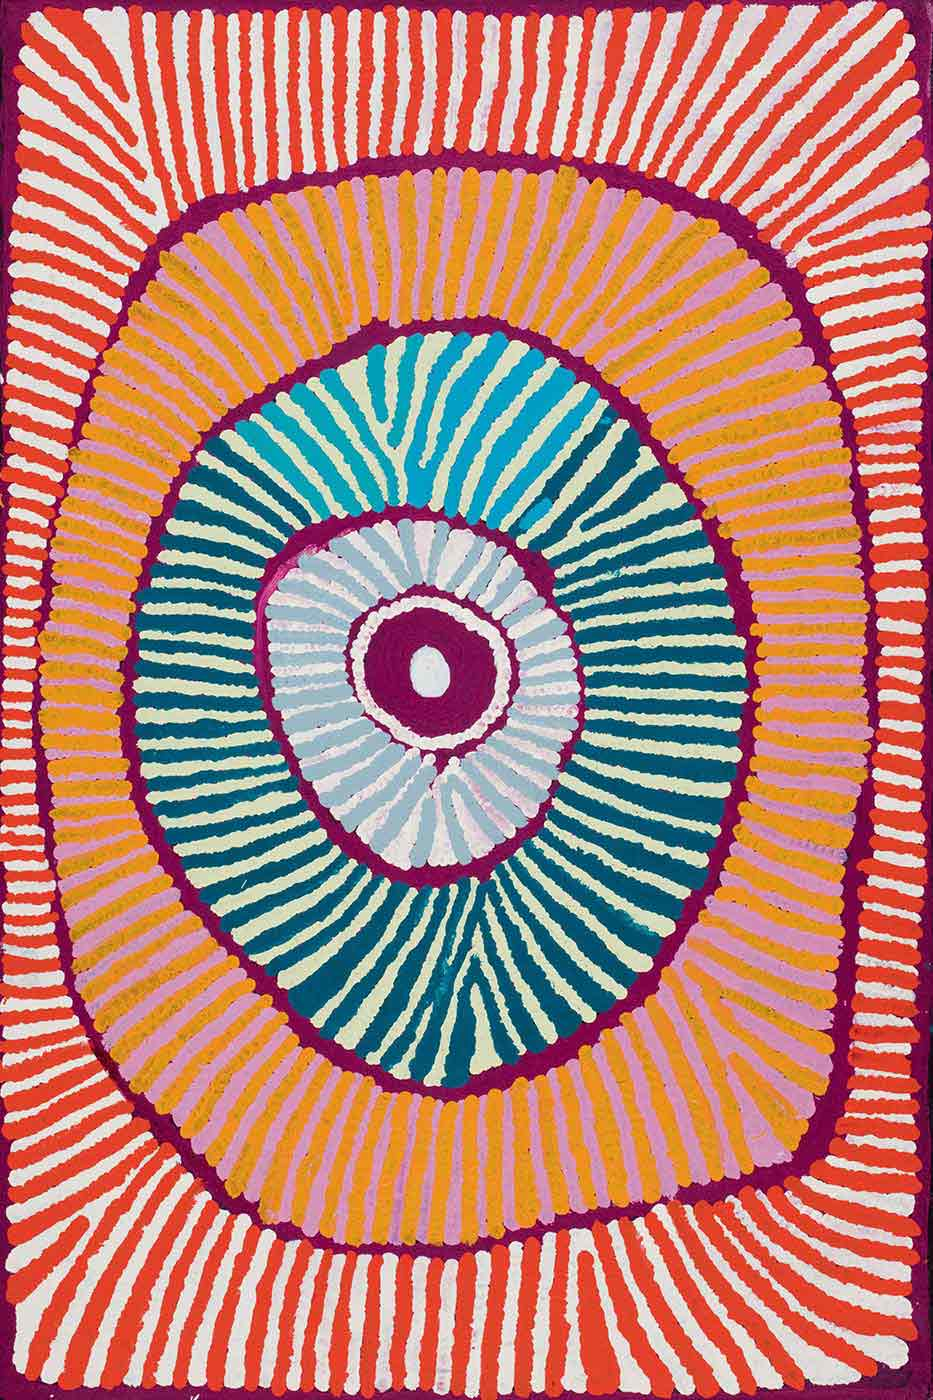 A painting on brown linen of a concentric circle with radiating lines within each ring, on a background of purple. The colours include grey with pink, cream with dark green, yellow with purple-pink and orange with cream.